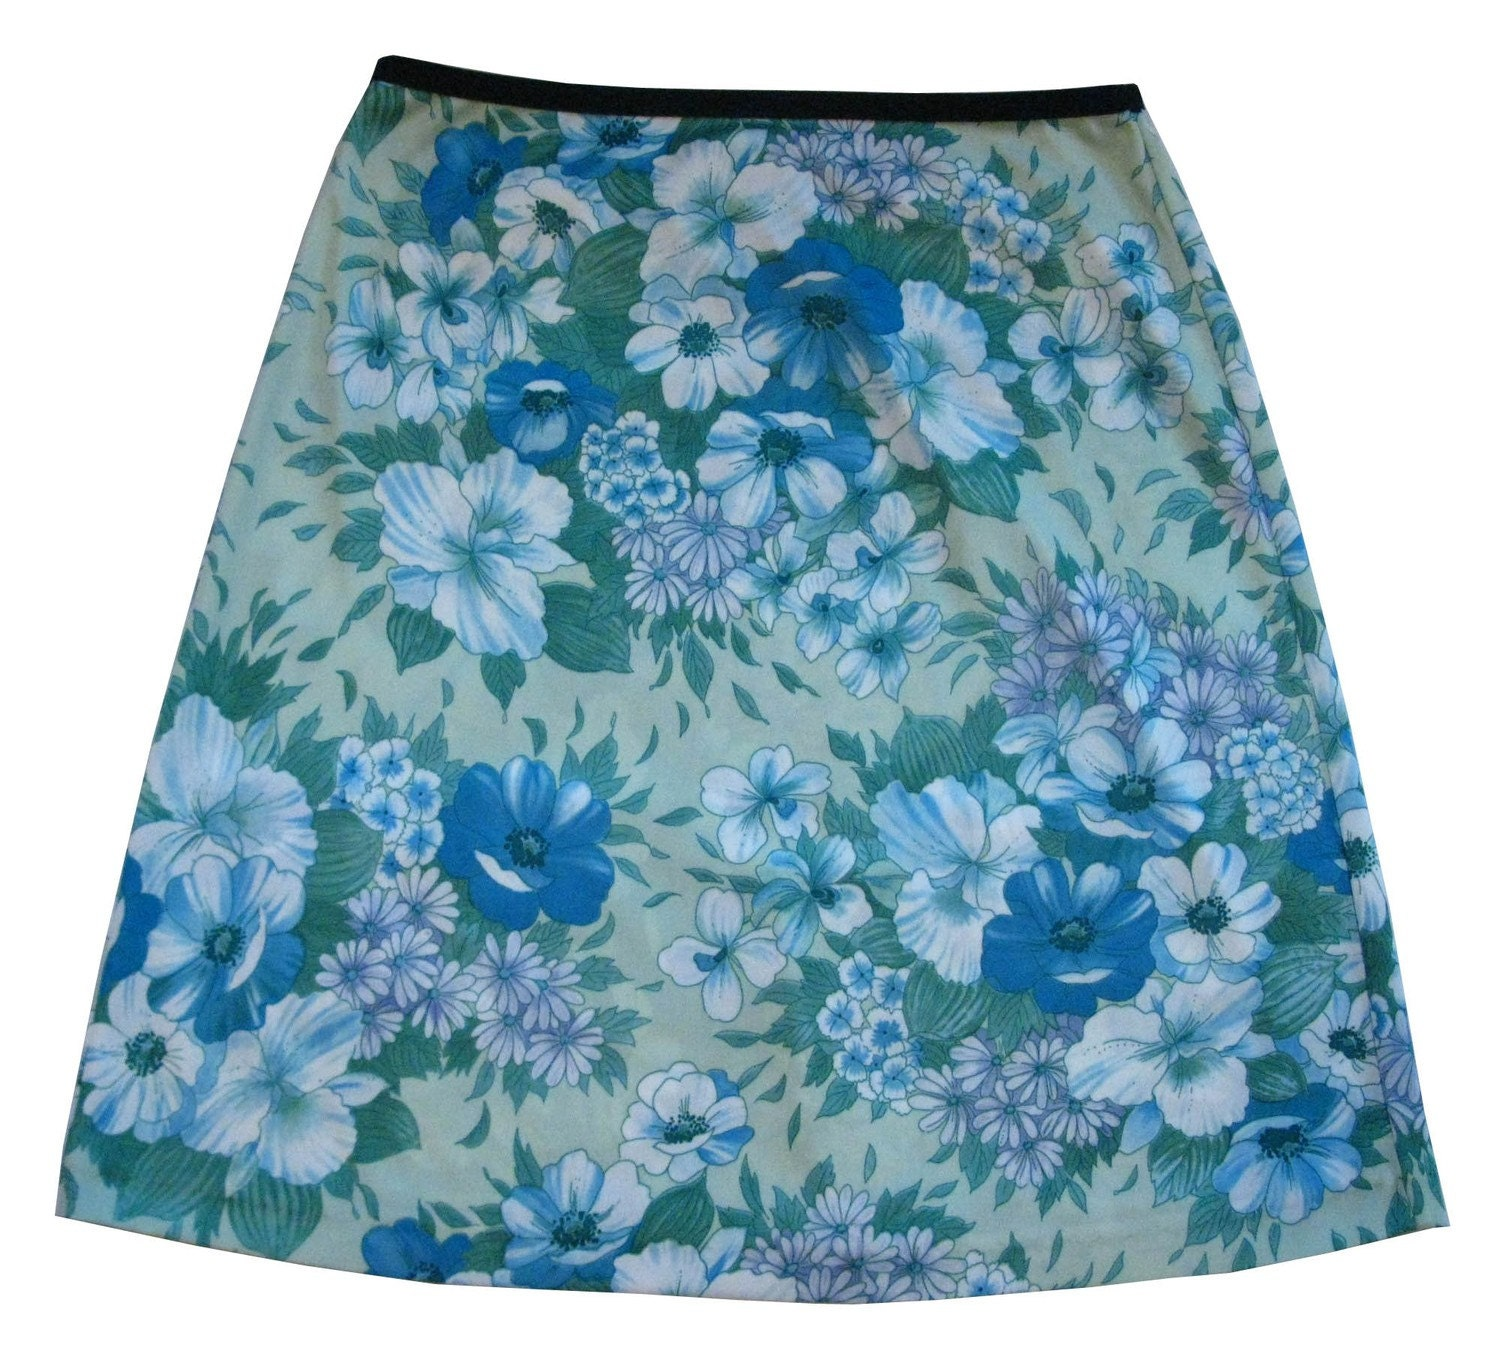 A-line pull on skirt